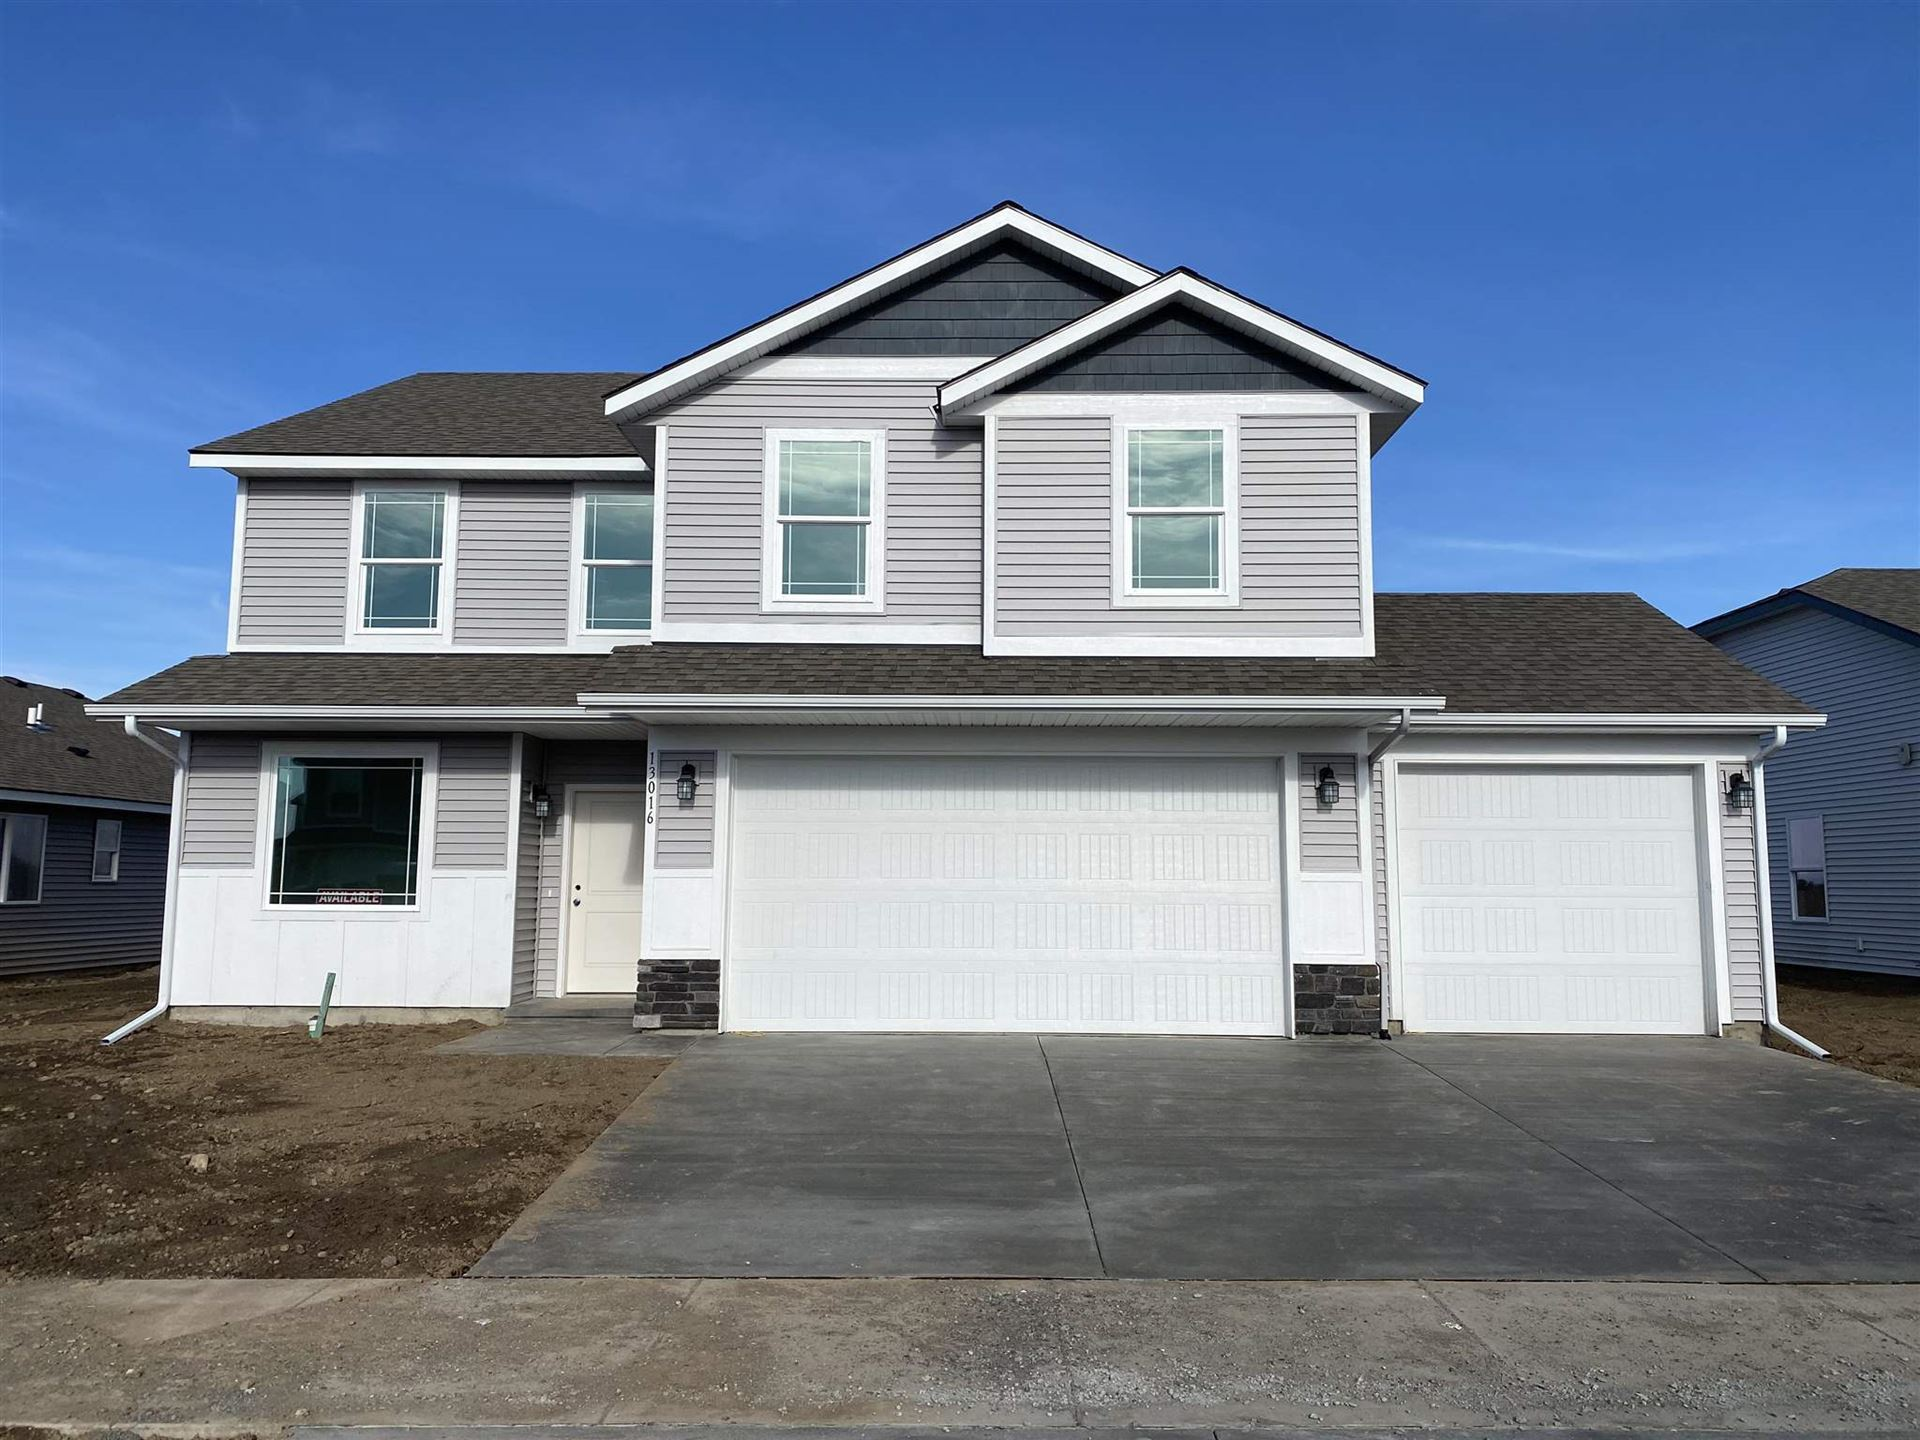 13016 W Pacific Ave, Airway Heights, WA 99001 - #: 202117855